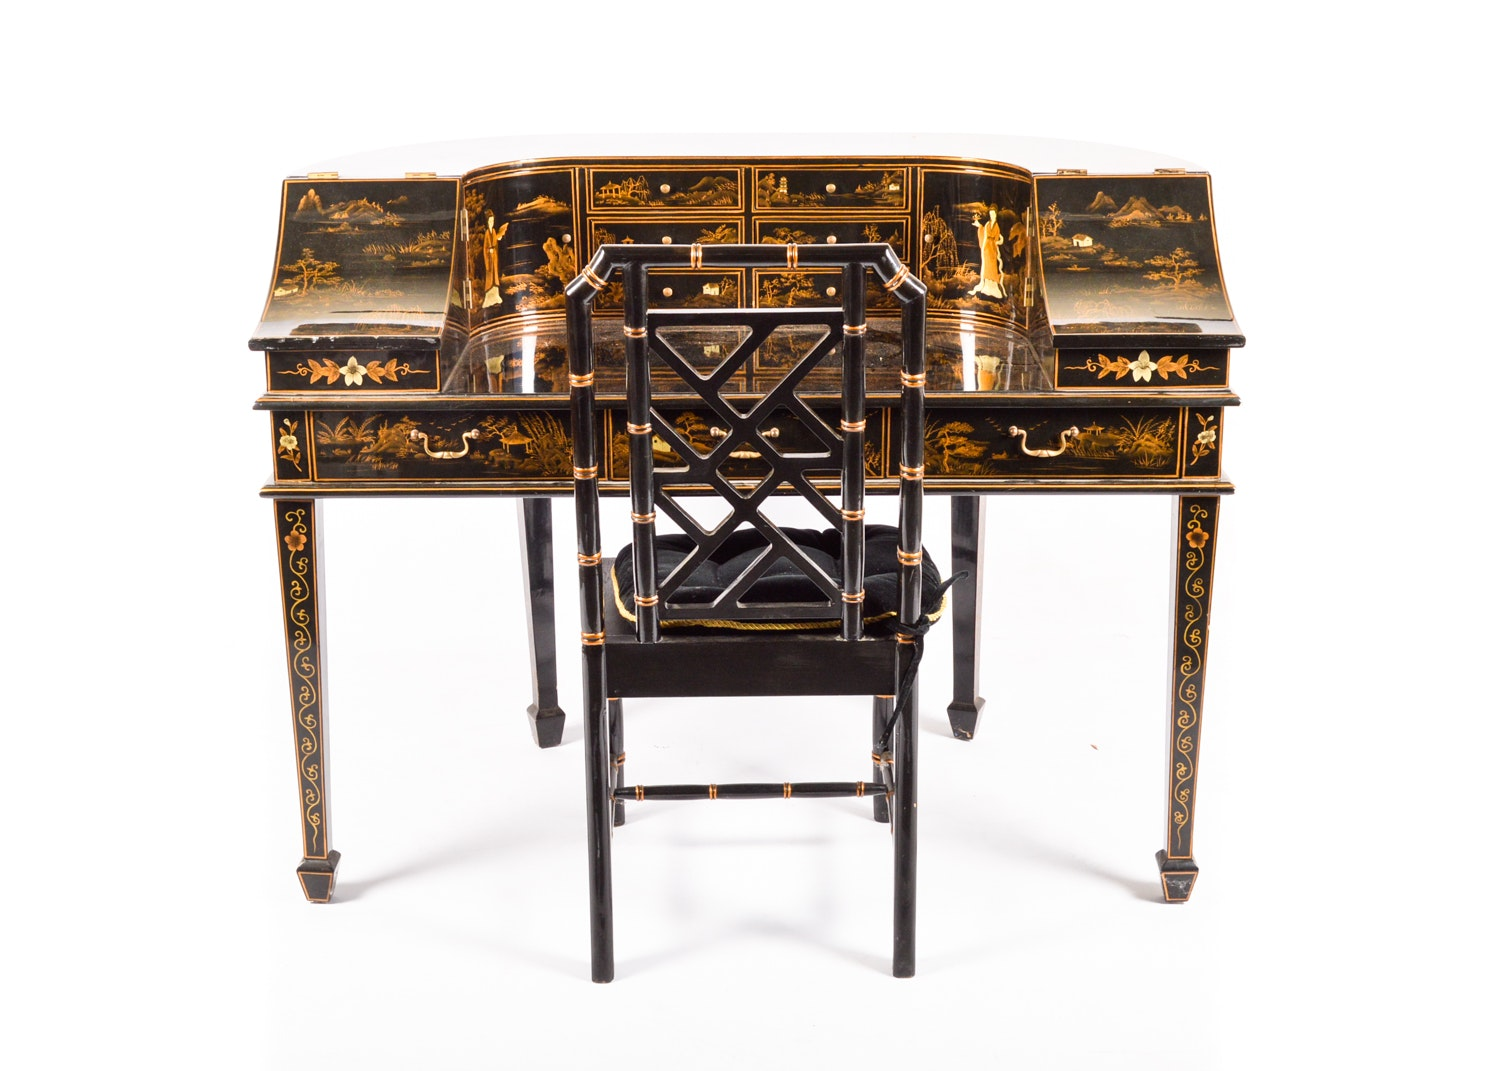 Chinoiserie Decorated Carlton House Desk and Faux Bamboo Chair